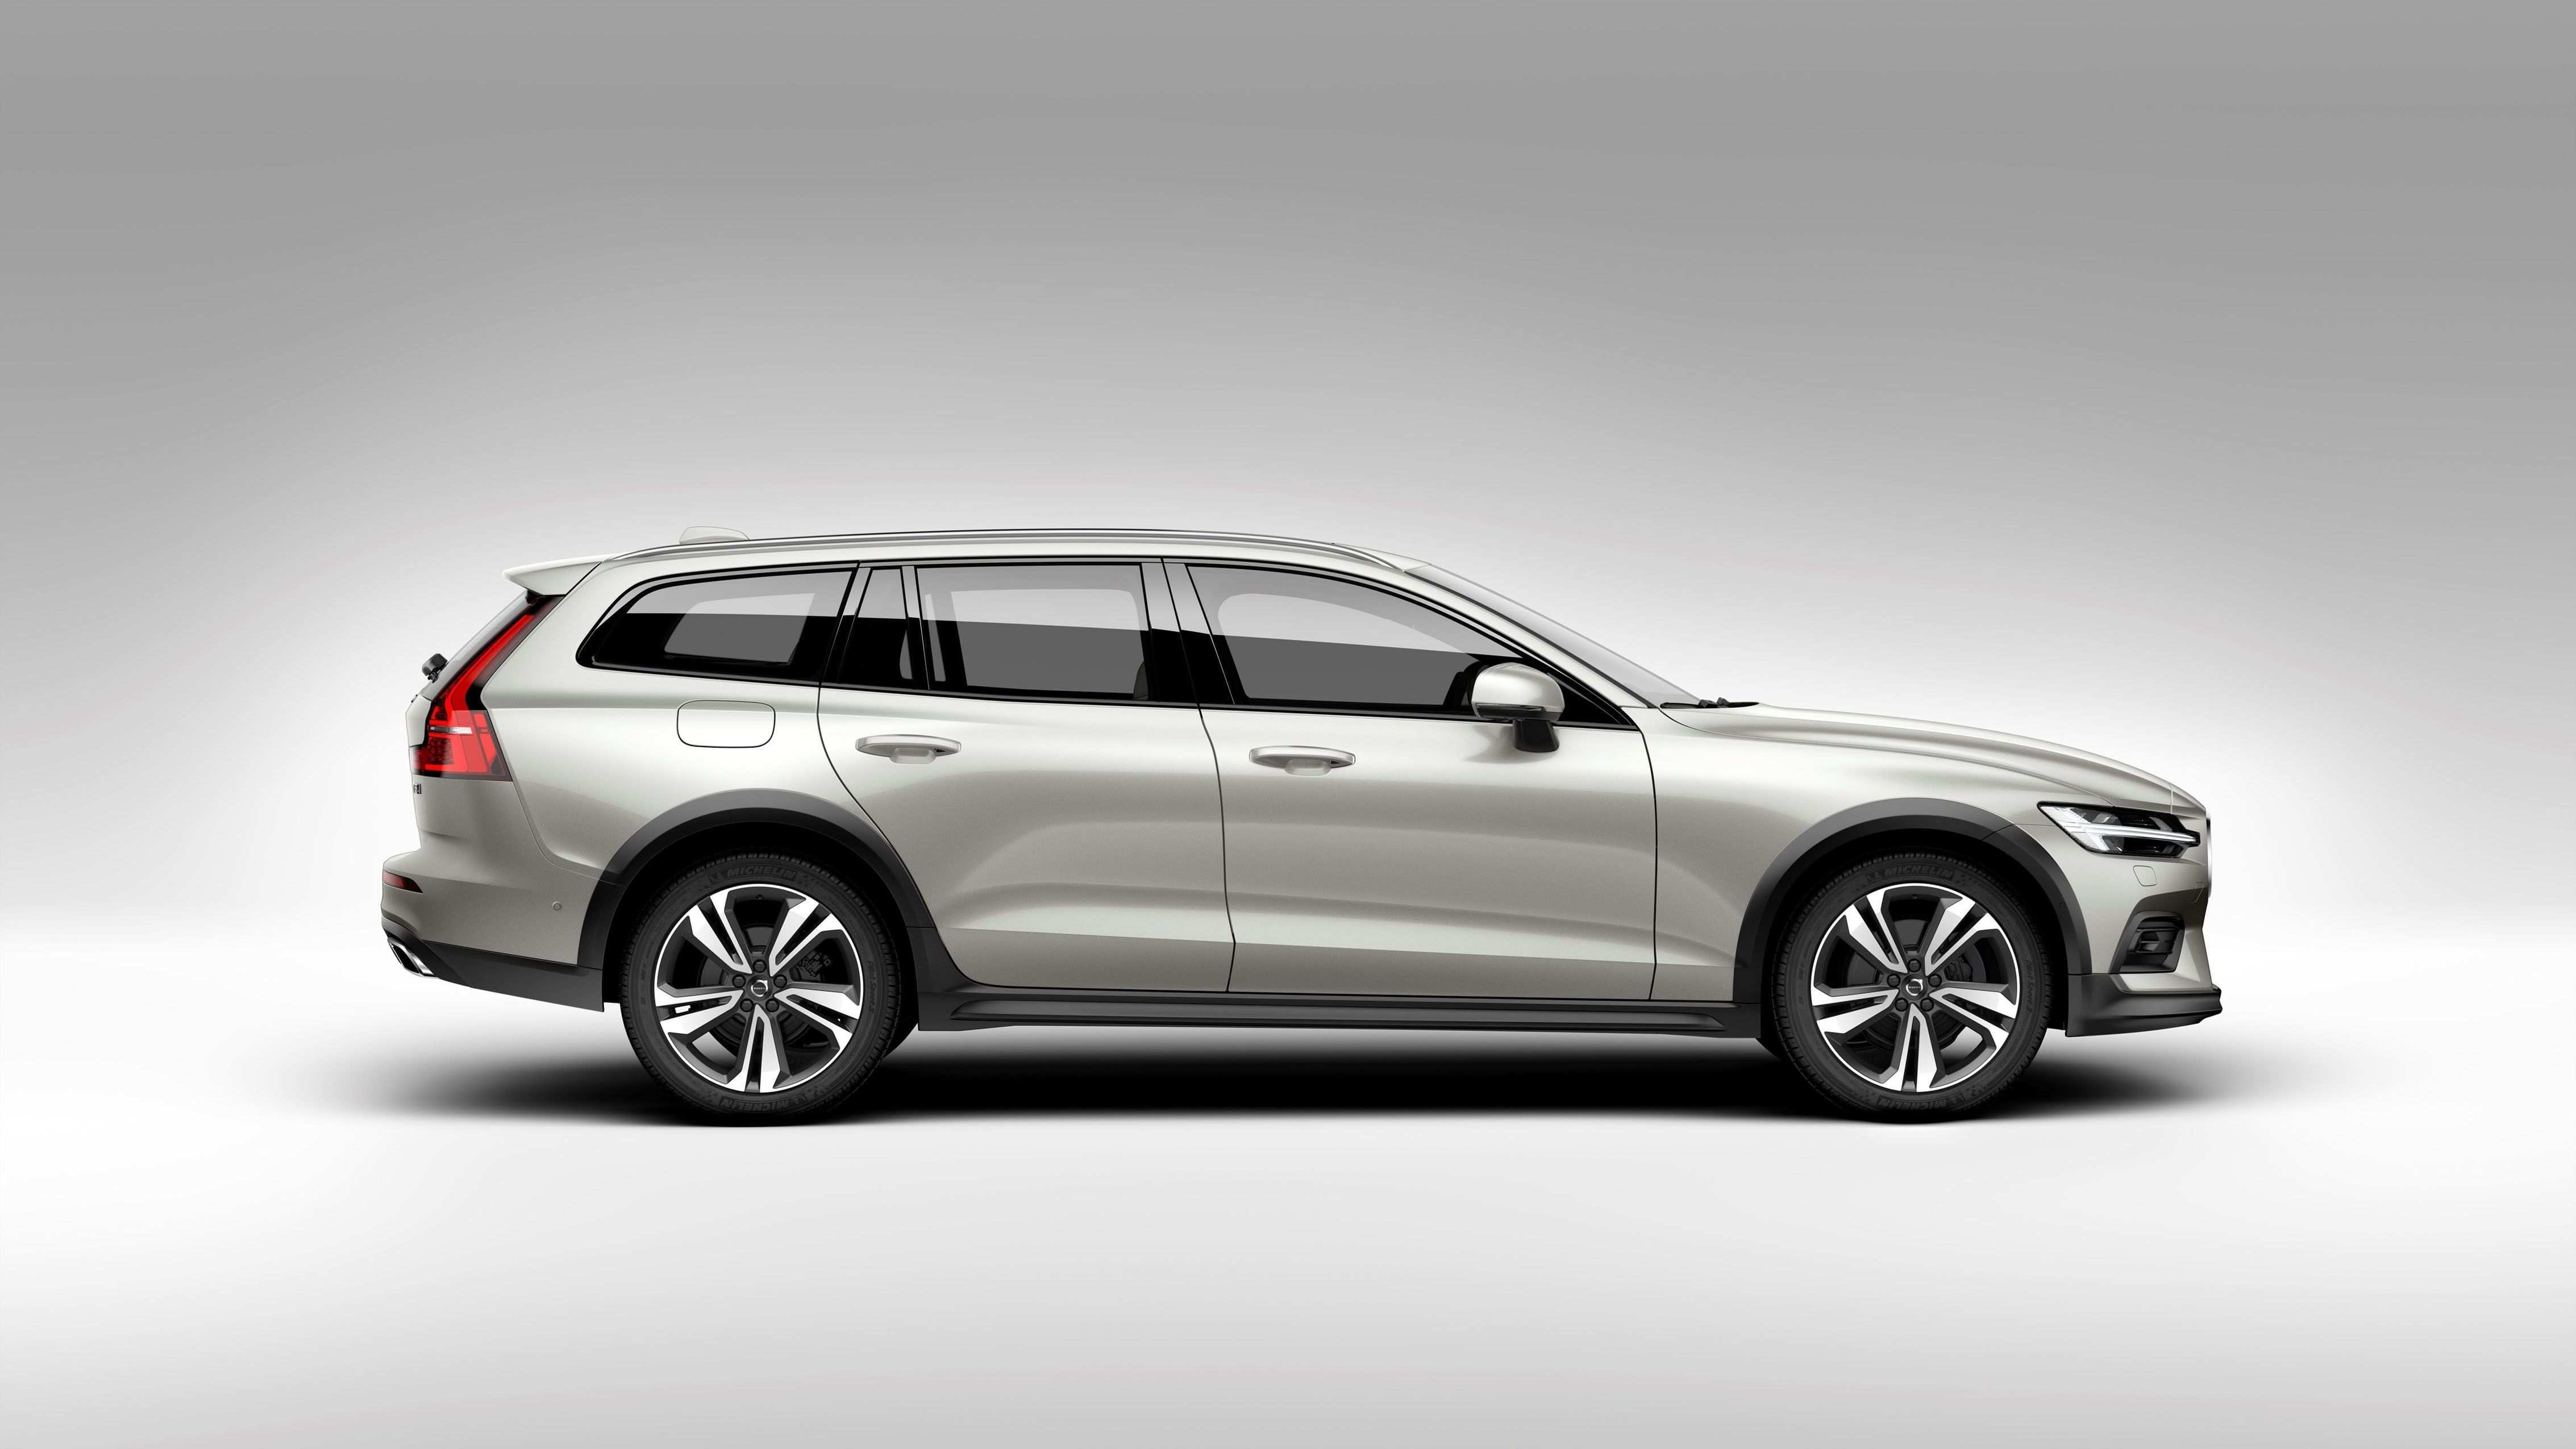 74 Gallery of Volvo V60 2020 New Concept Performance and New Engine with Volvo V60 2020 New Concept